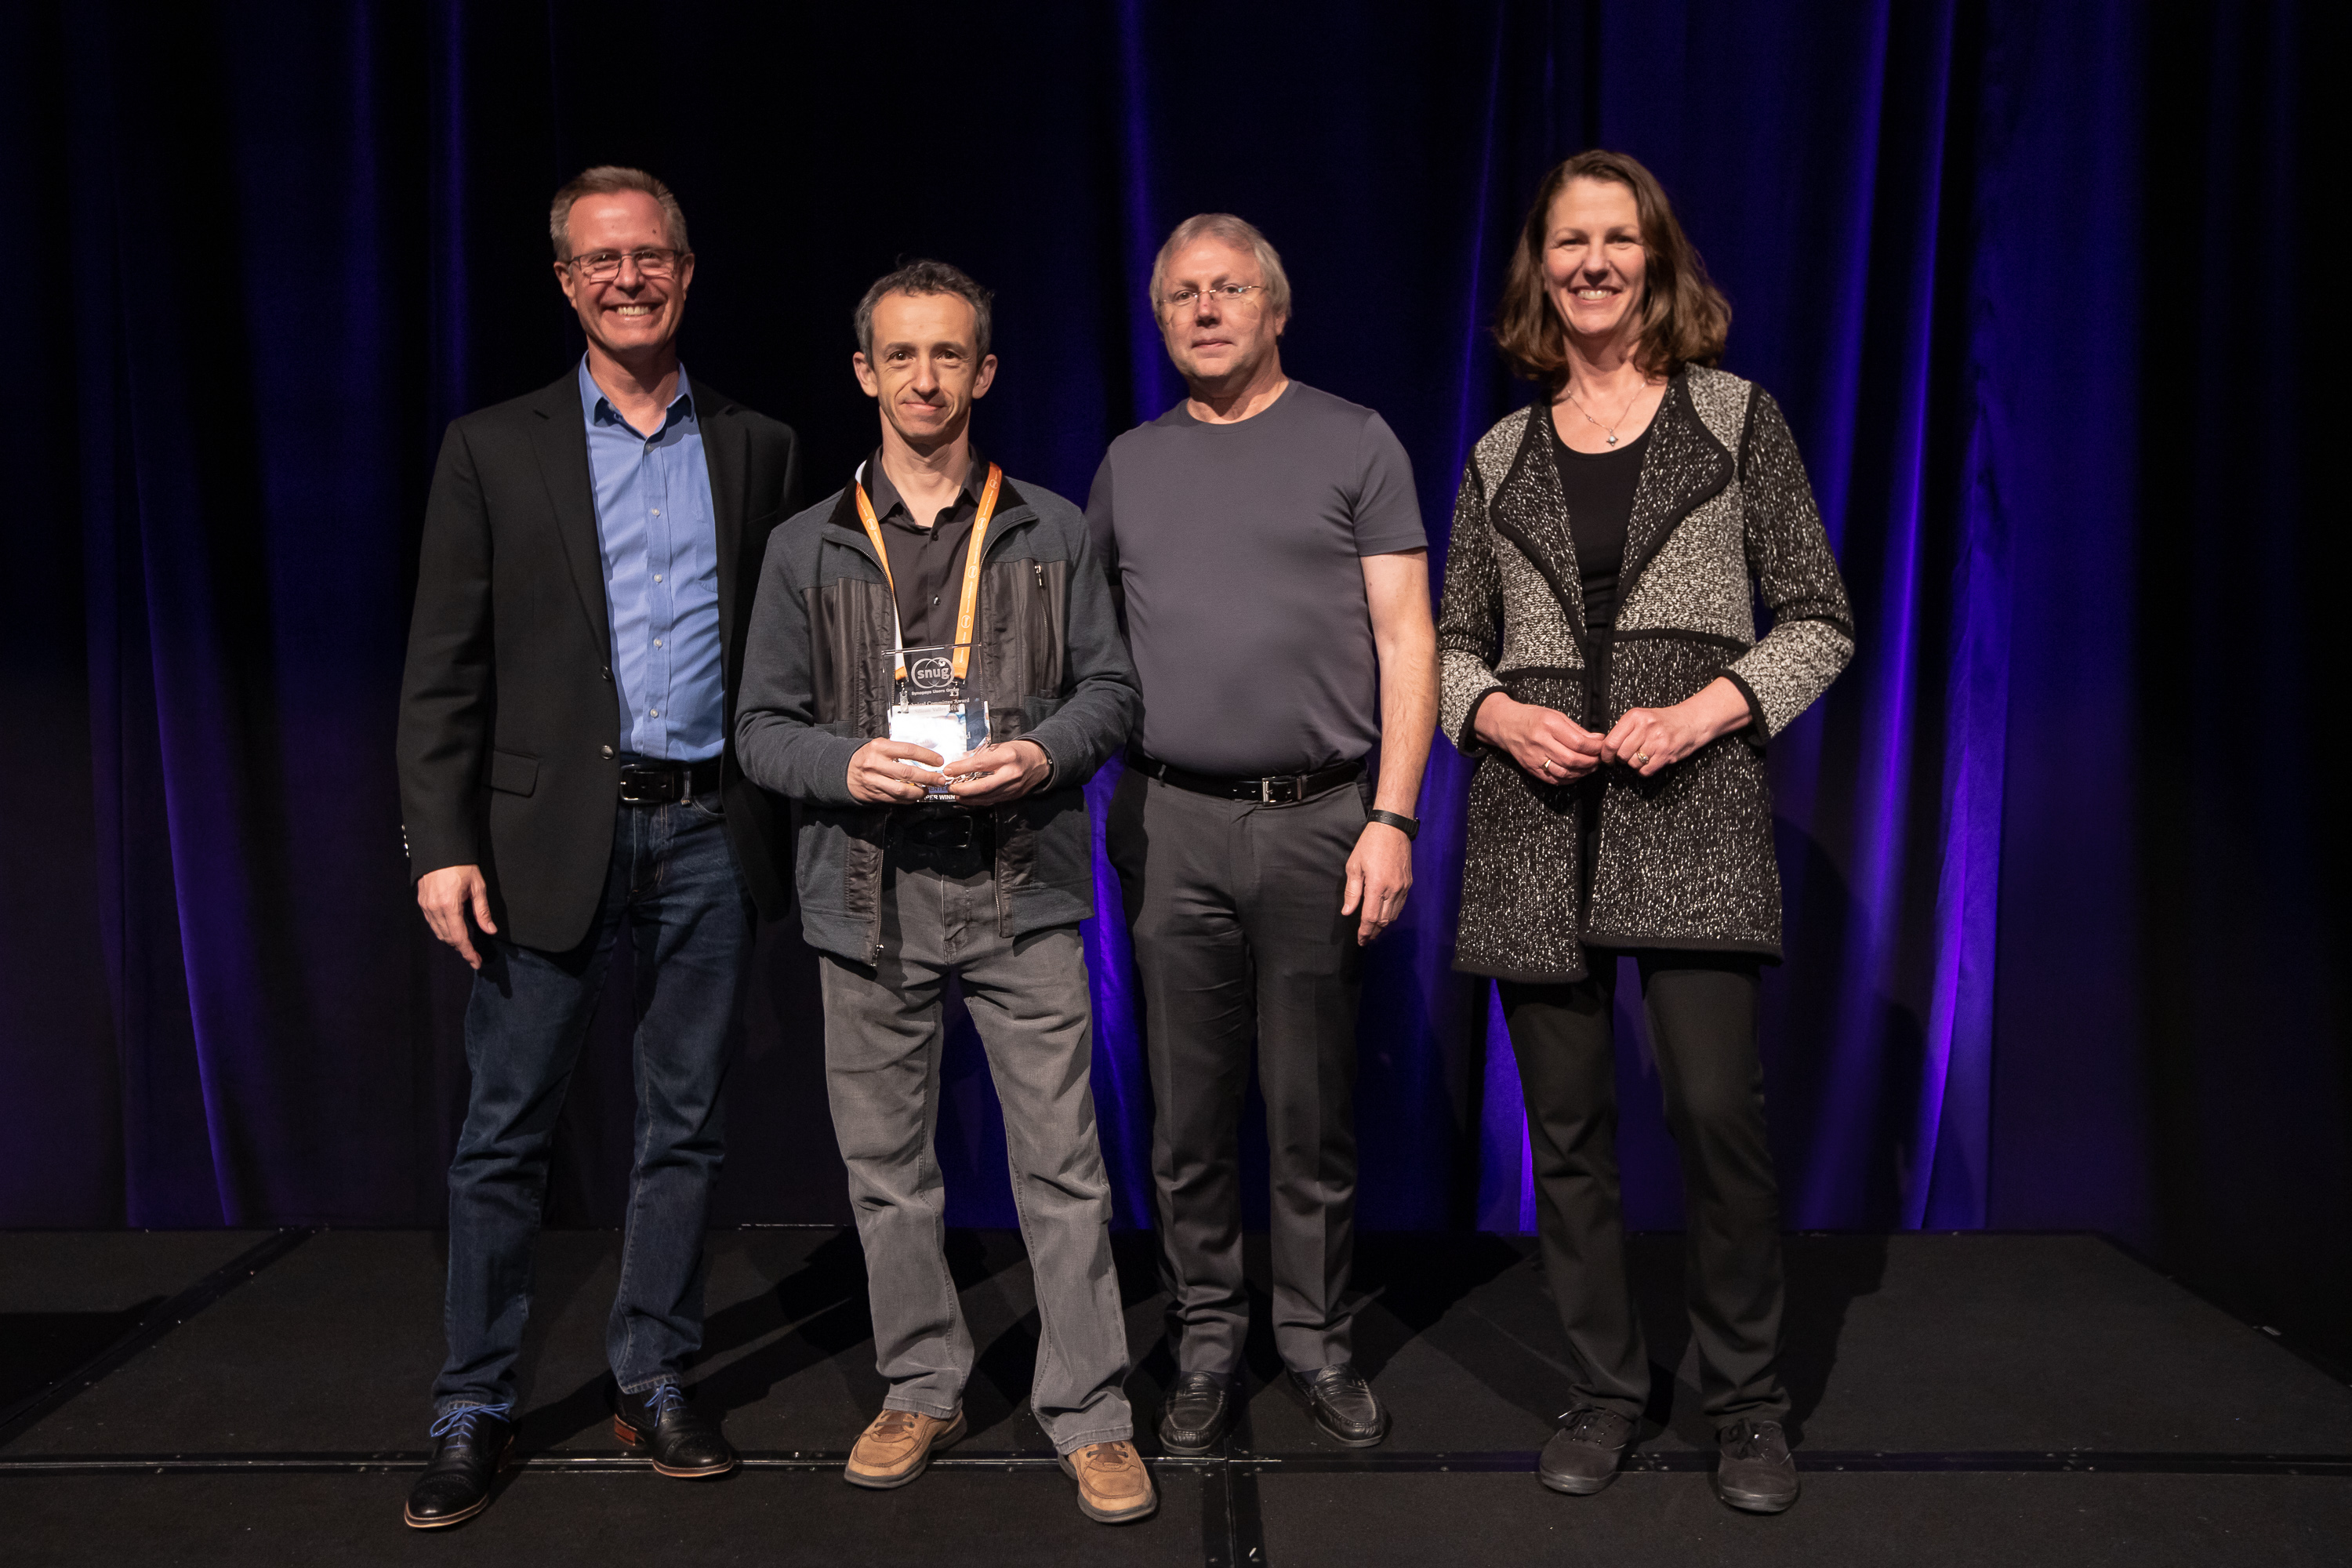 Arteris IP Awarded 1st Place for Technical Paper at Synopsys Users Group (SNUG) Silicon Valley 2019